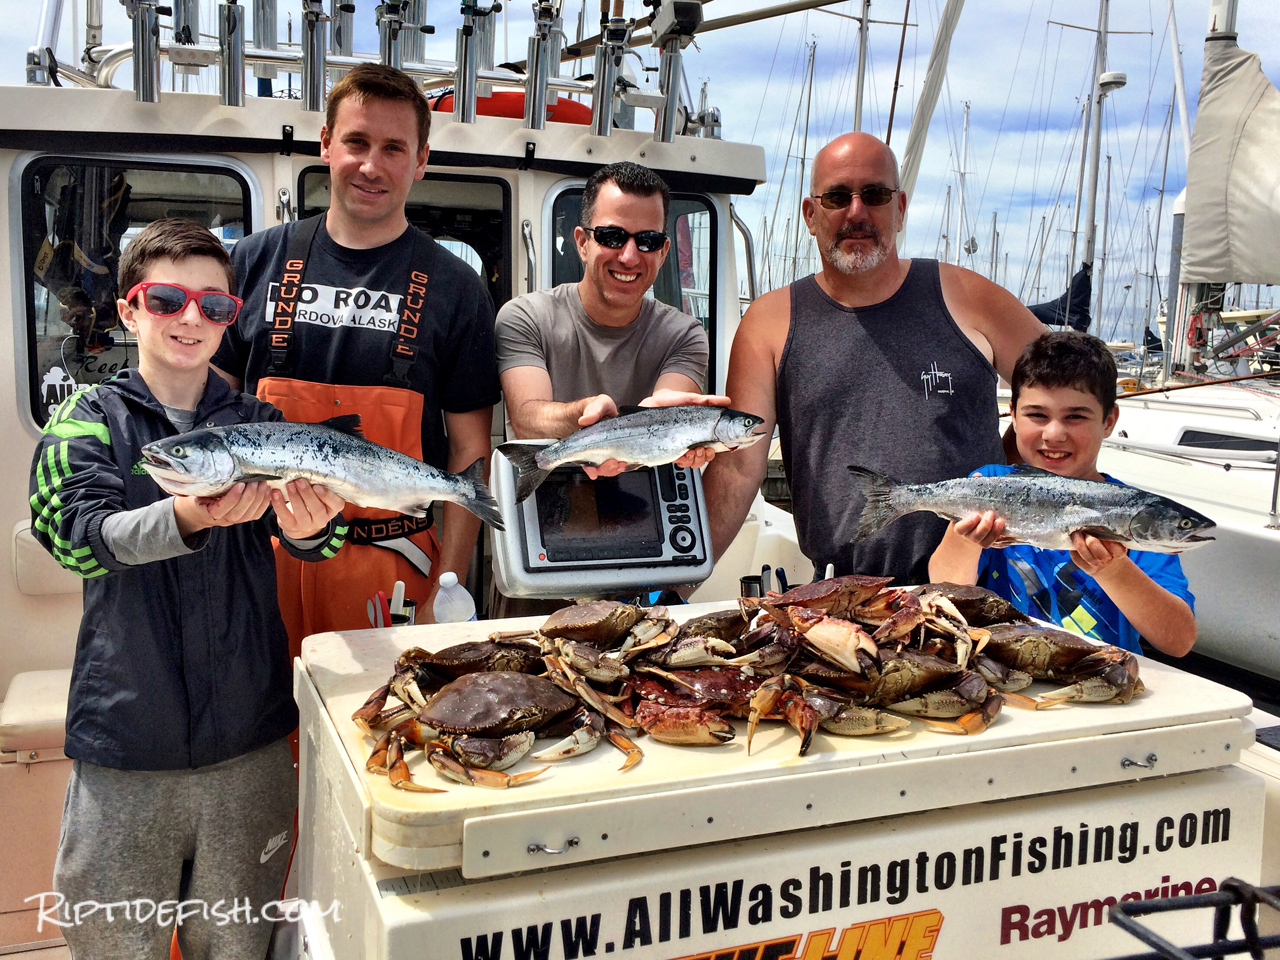 Puget Sound Fishing and Crabbing